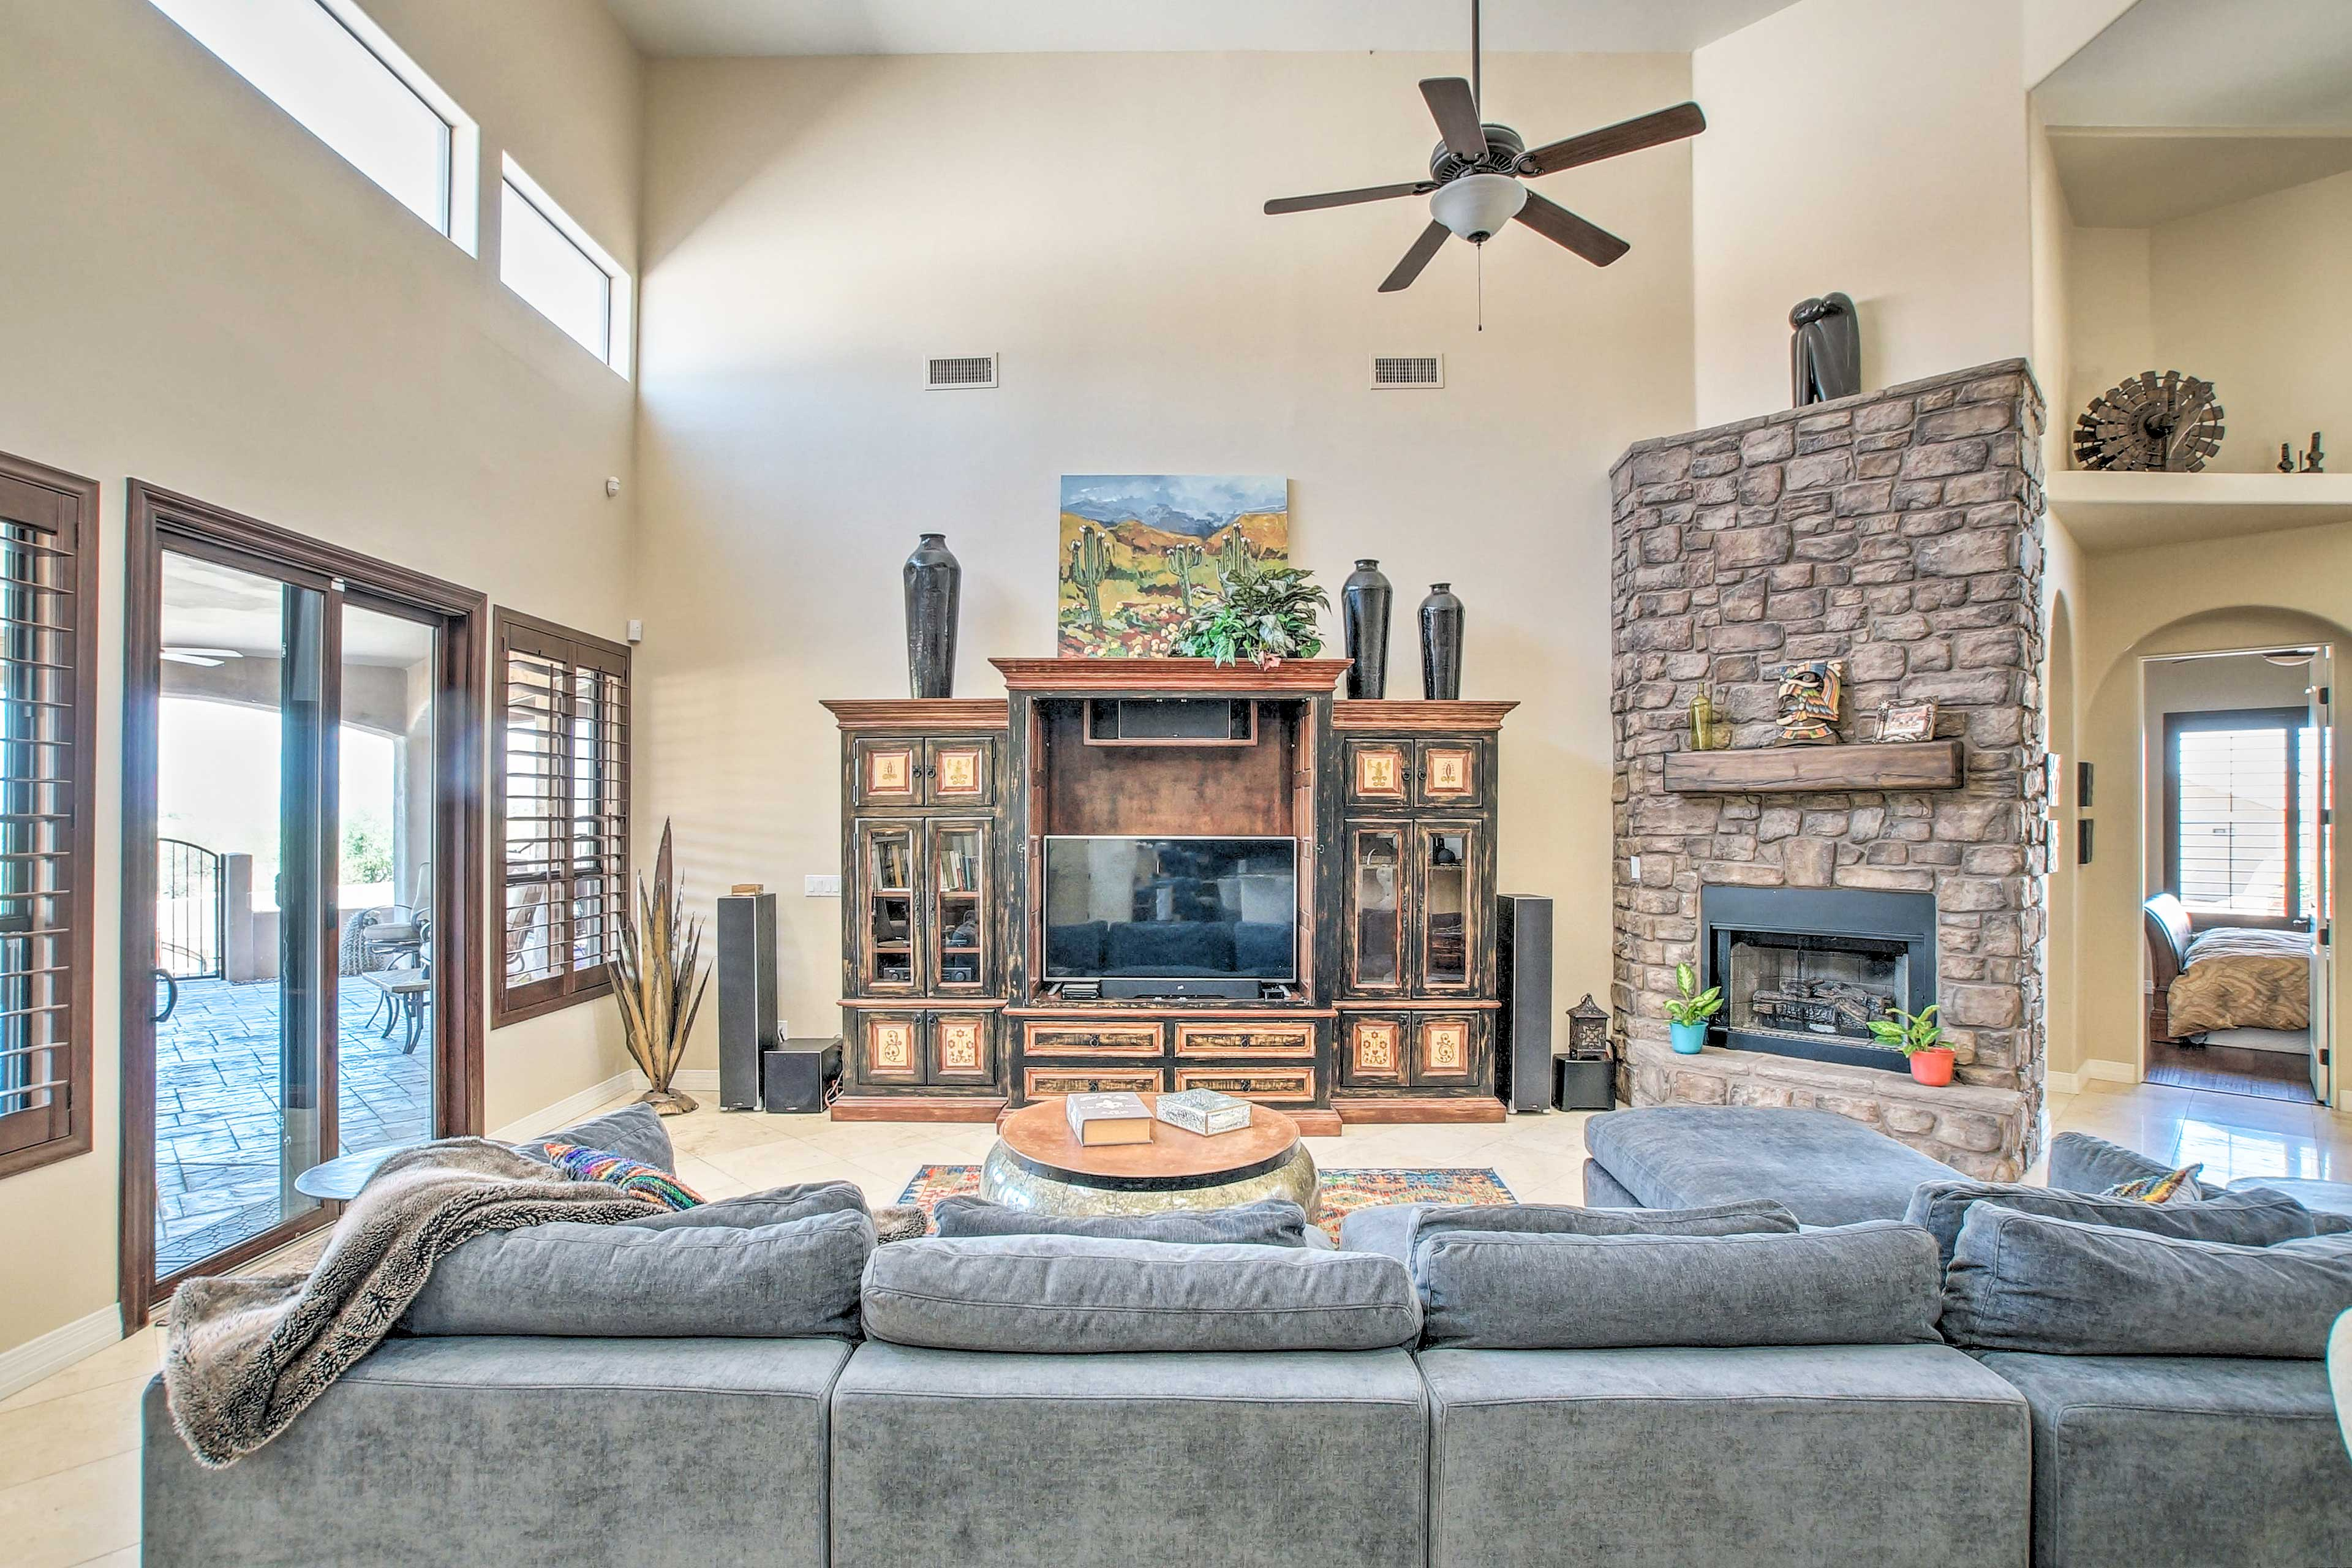 The many windows and high ceilings provide plenty of natural light.